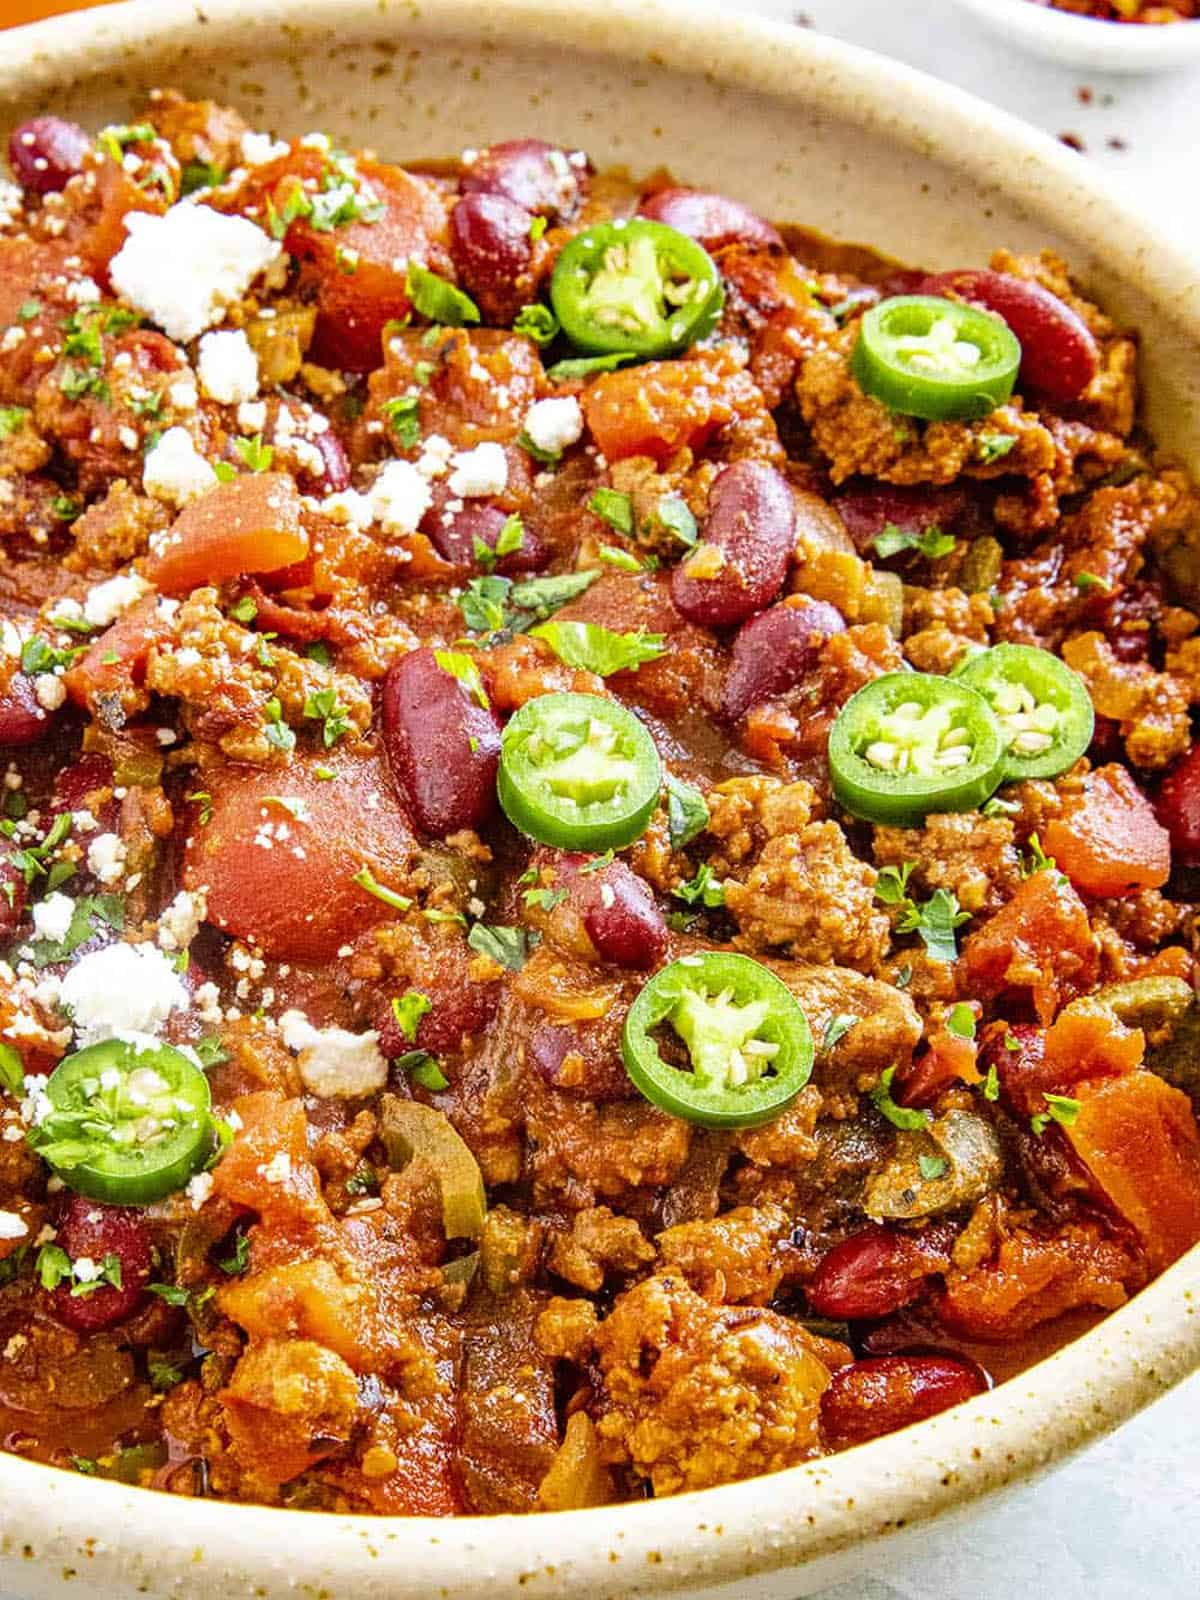 10 Winning Chili Recipes for Game Day – Story